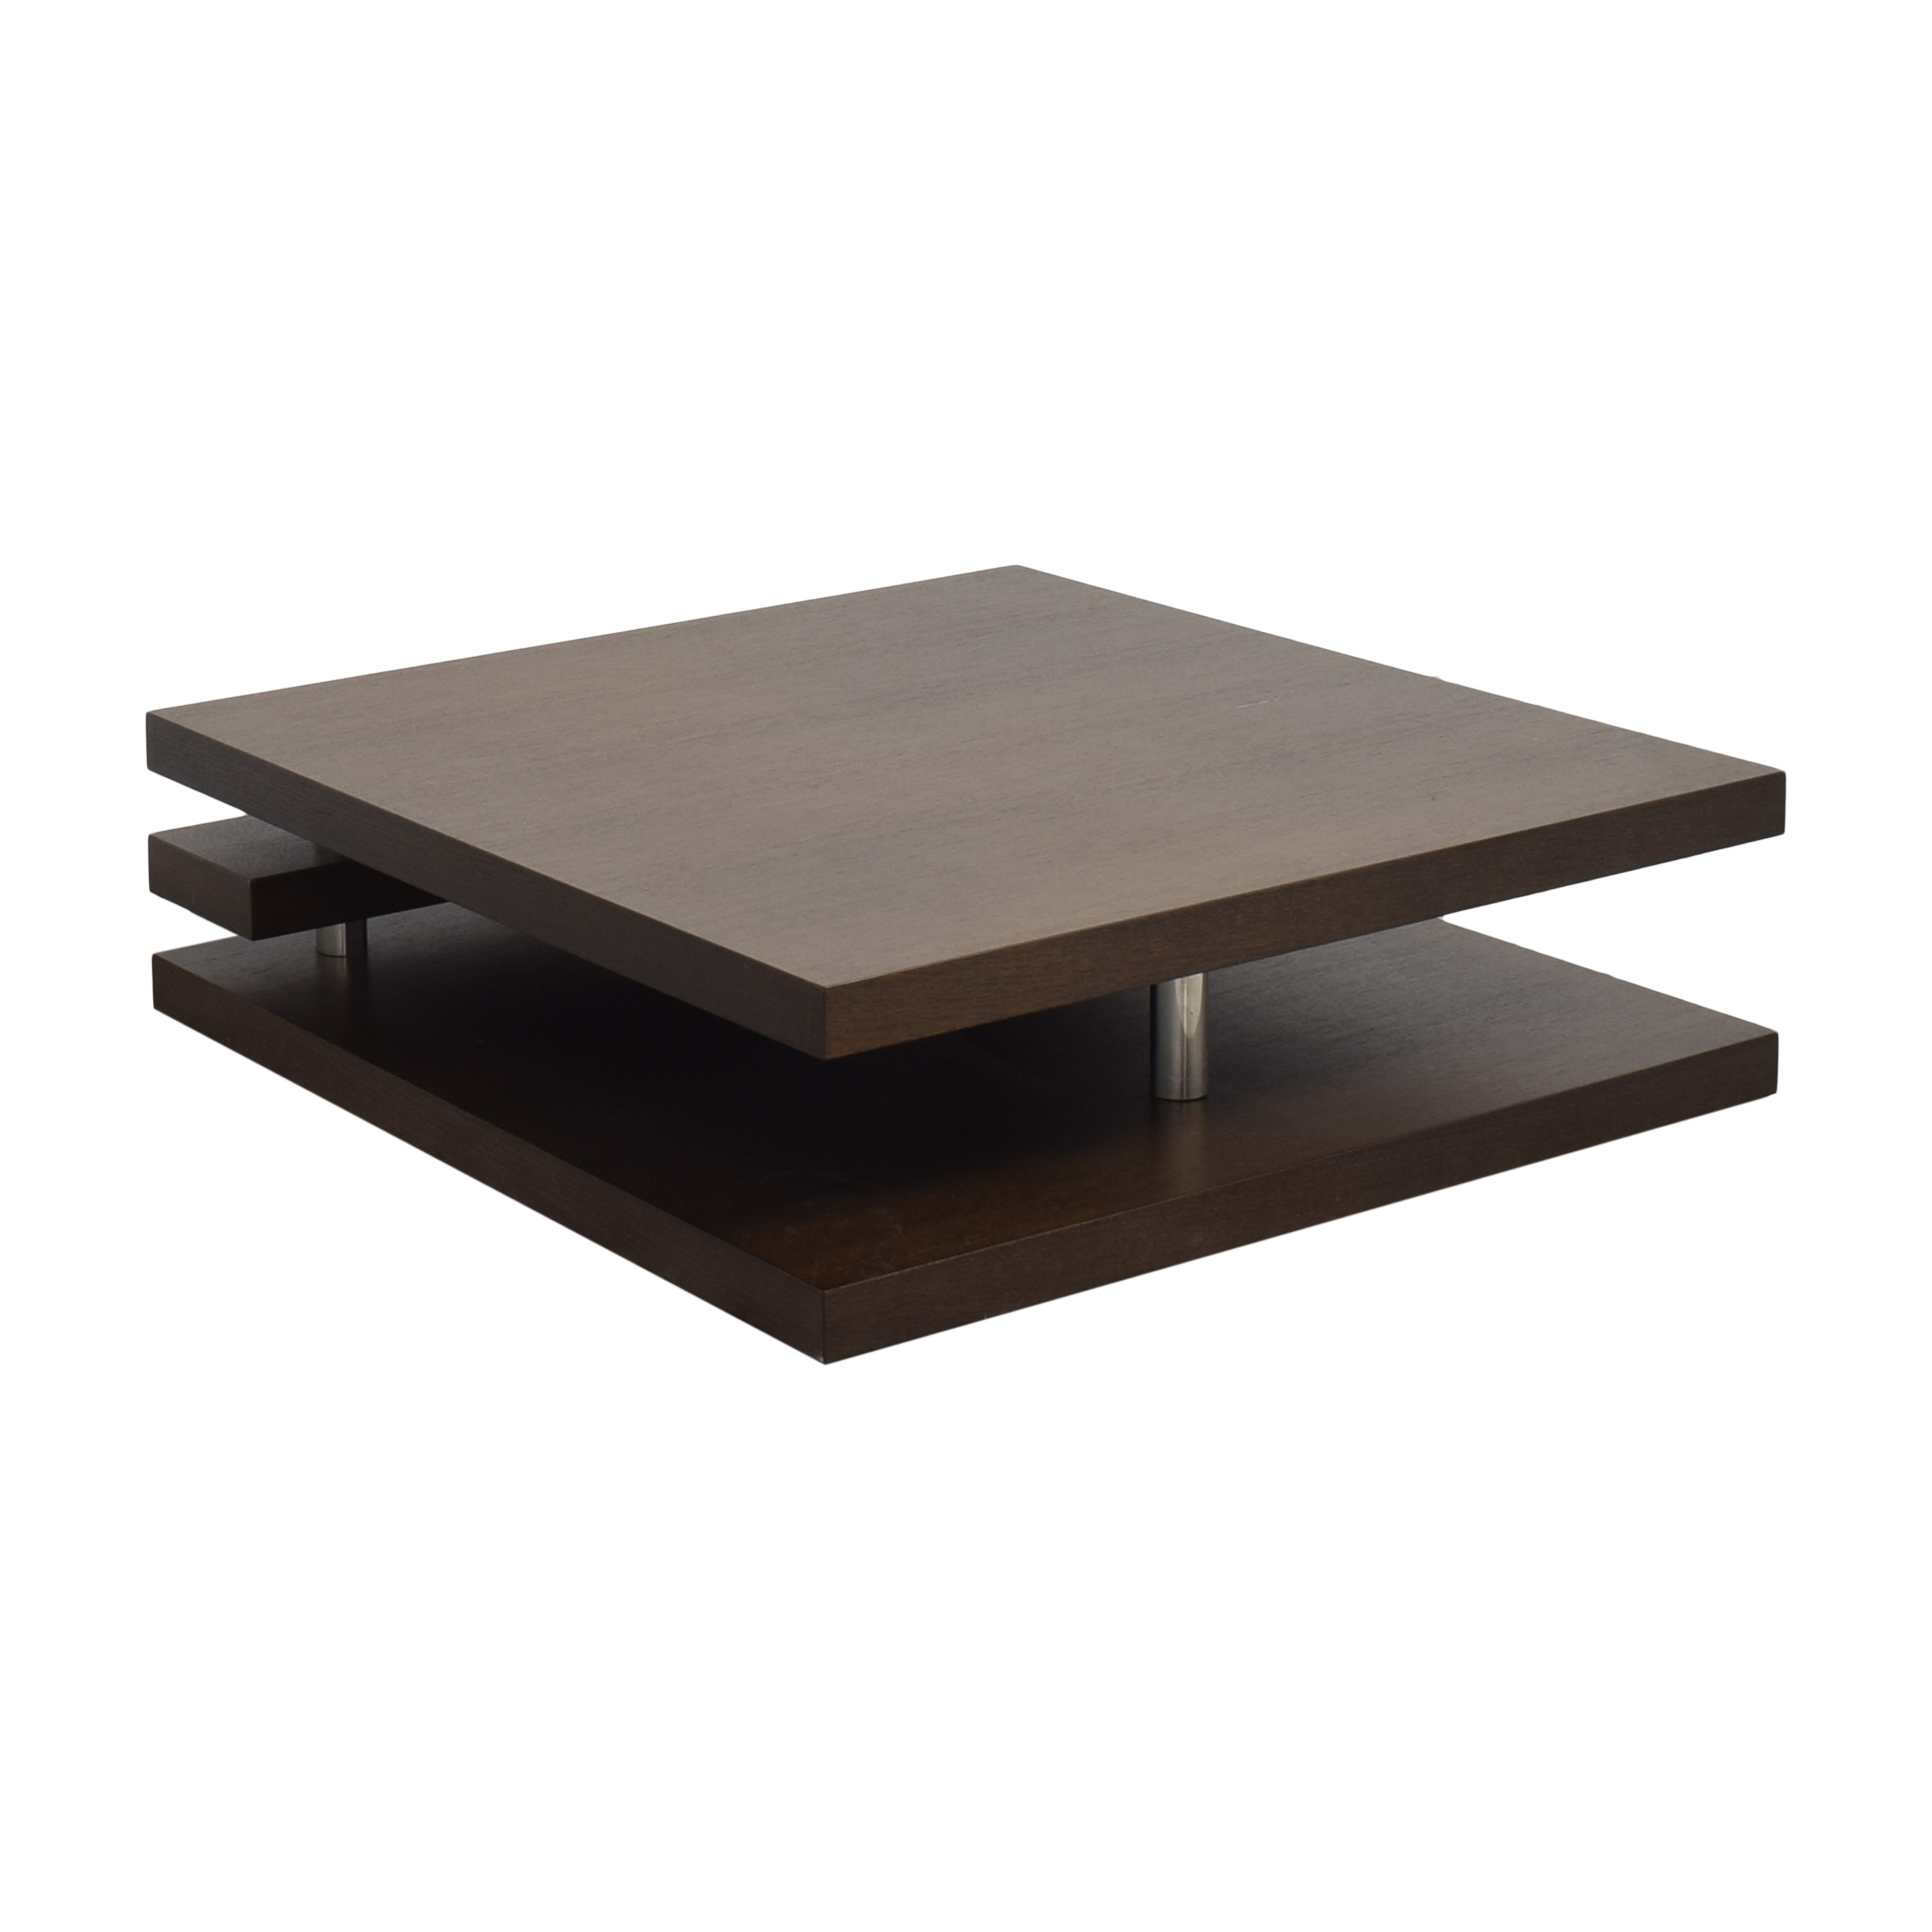 Contemporary Square Coffee Table brown and gray